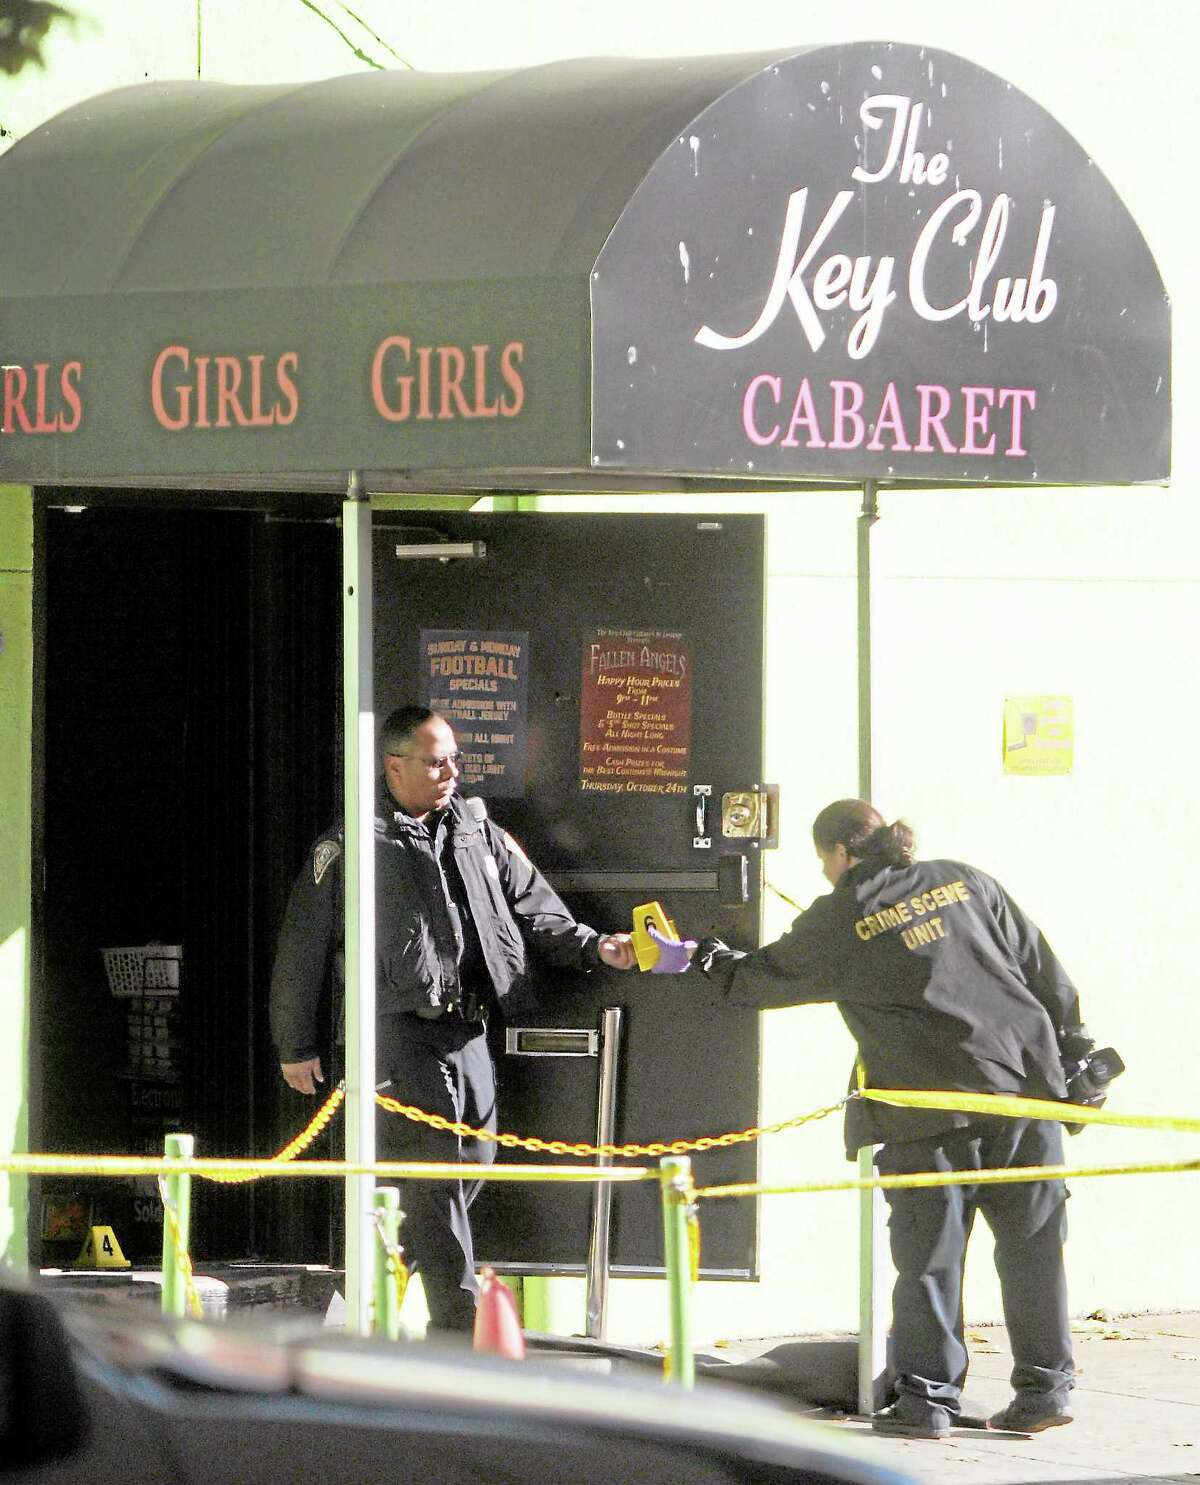 (Peter Hvizdak — Register)Saturday October 26, 2013(Peter Hvizdak — Register)New Haven Police investigate the crime scene were one woman is dead, two people are listed in critical condition and three are being treated for non-life threatening wounds and injuries after a shooting at the Key Club Cabaret at 85 Saint John St. Saturday October 26, 2013.